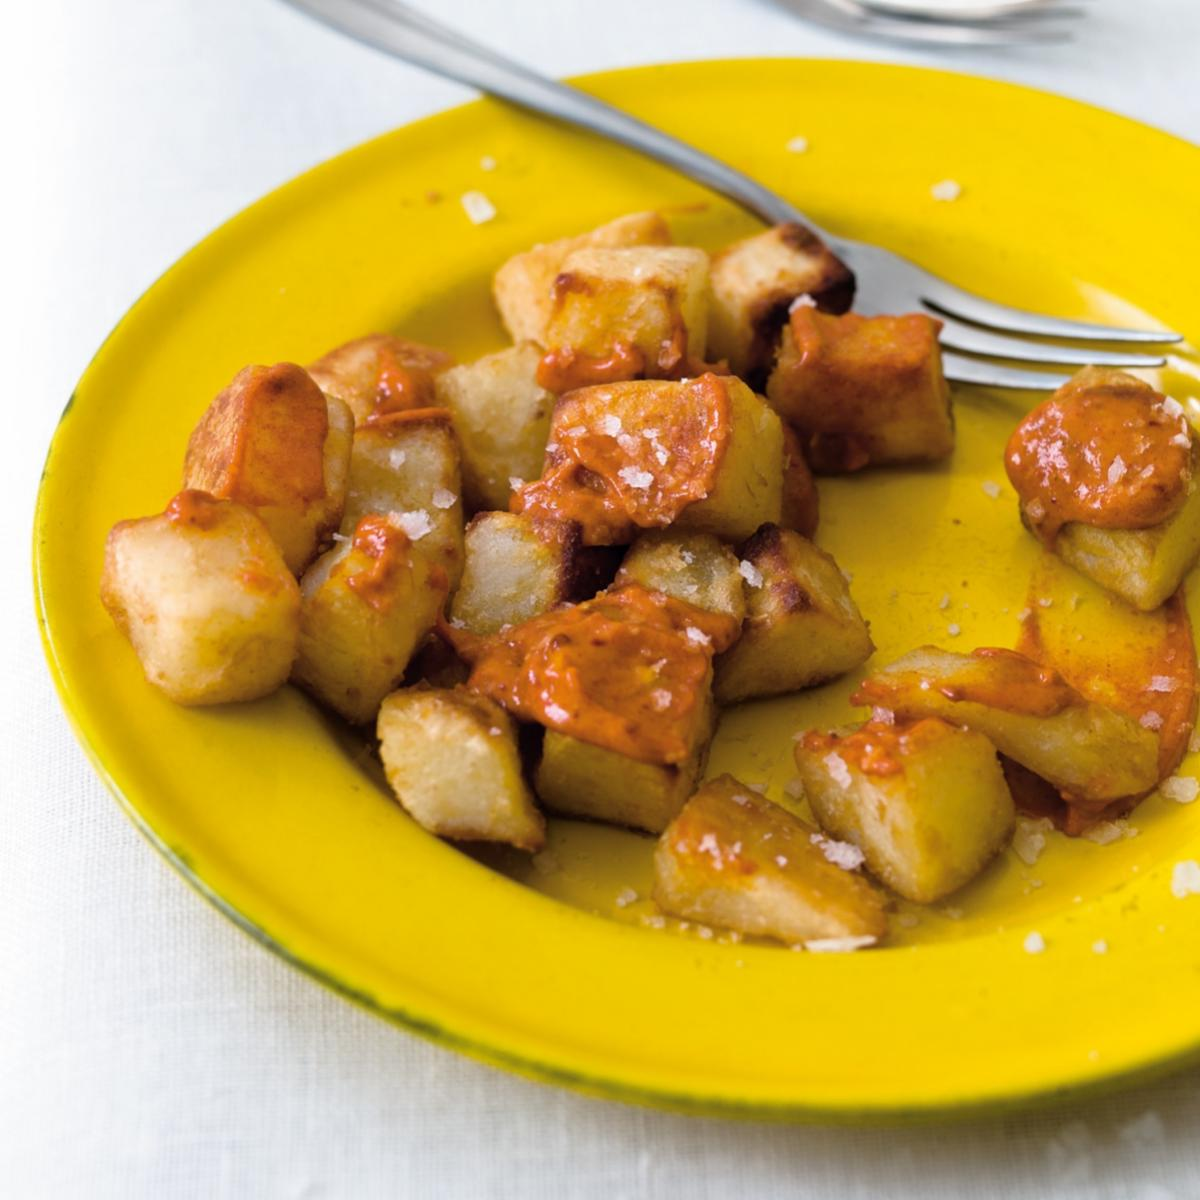 Cheat patatas bravas